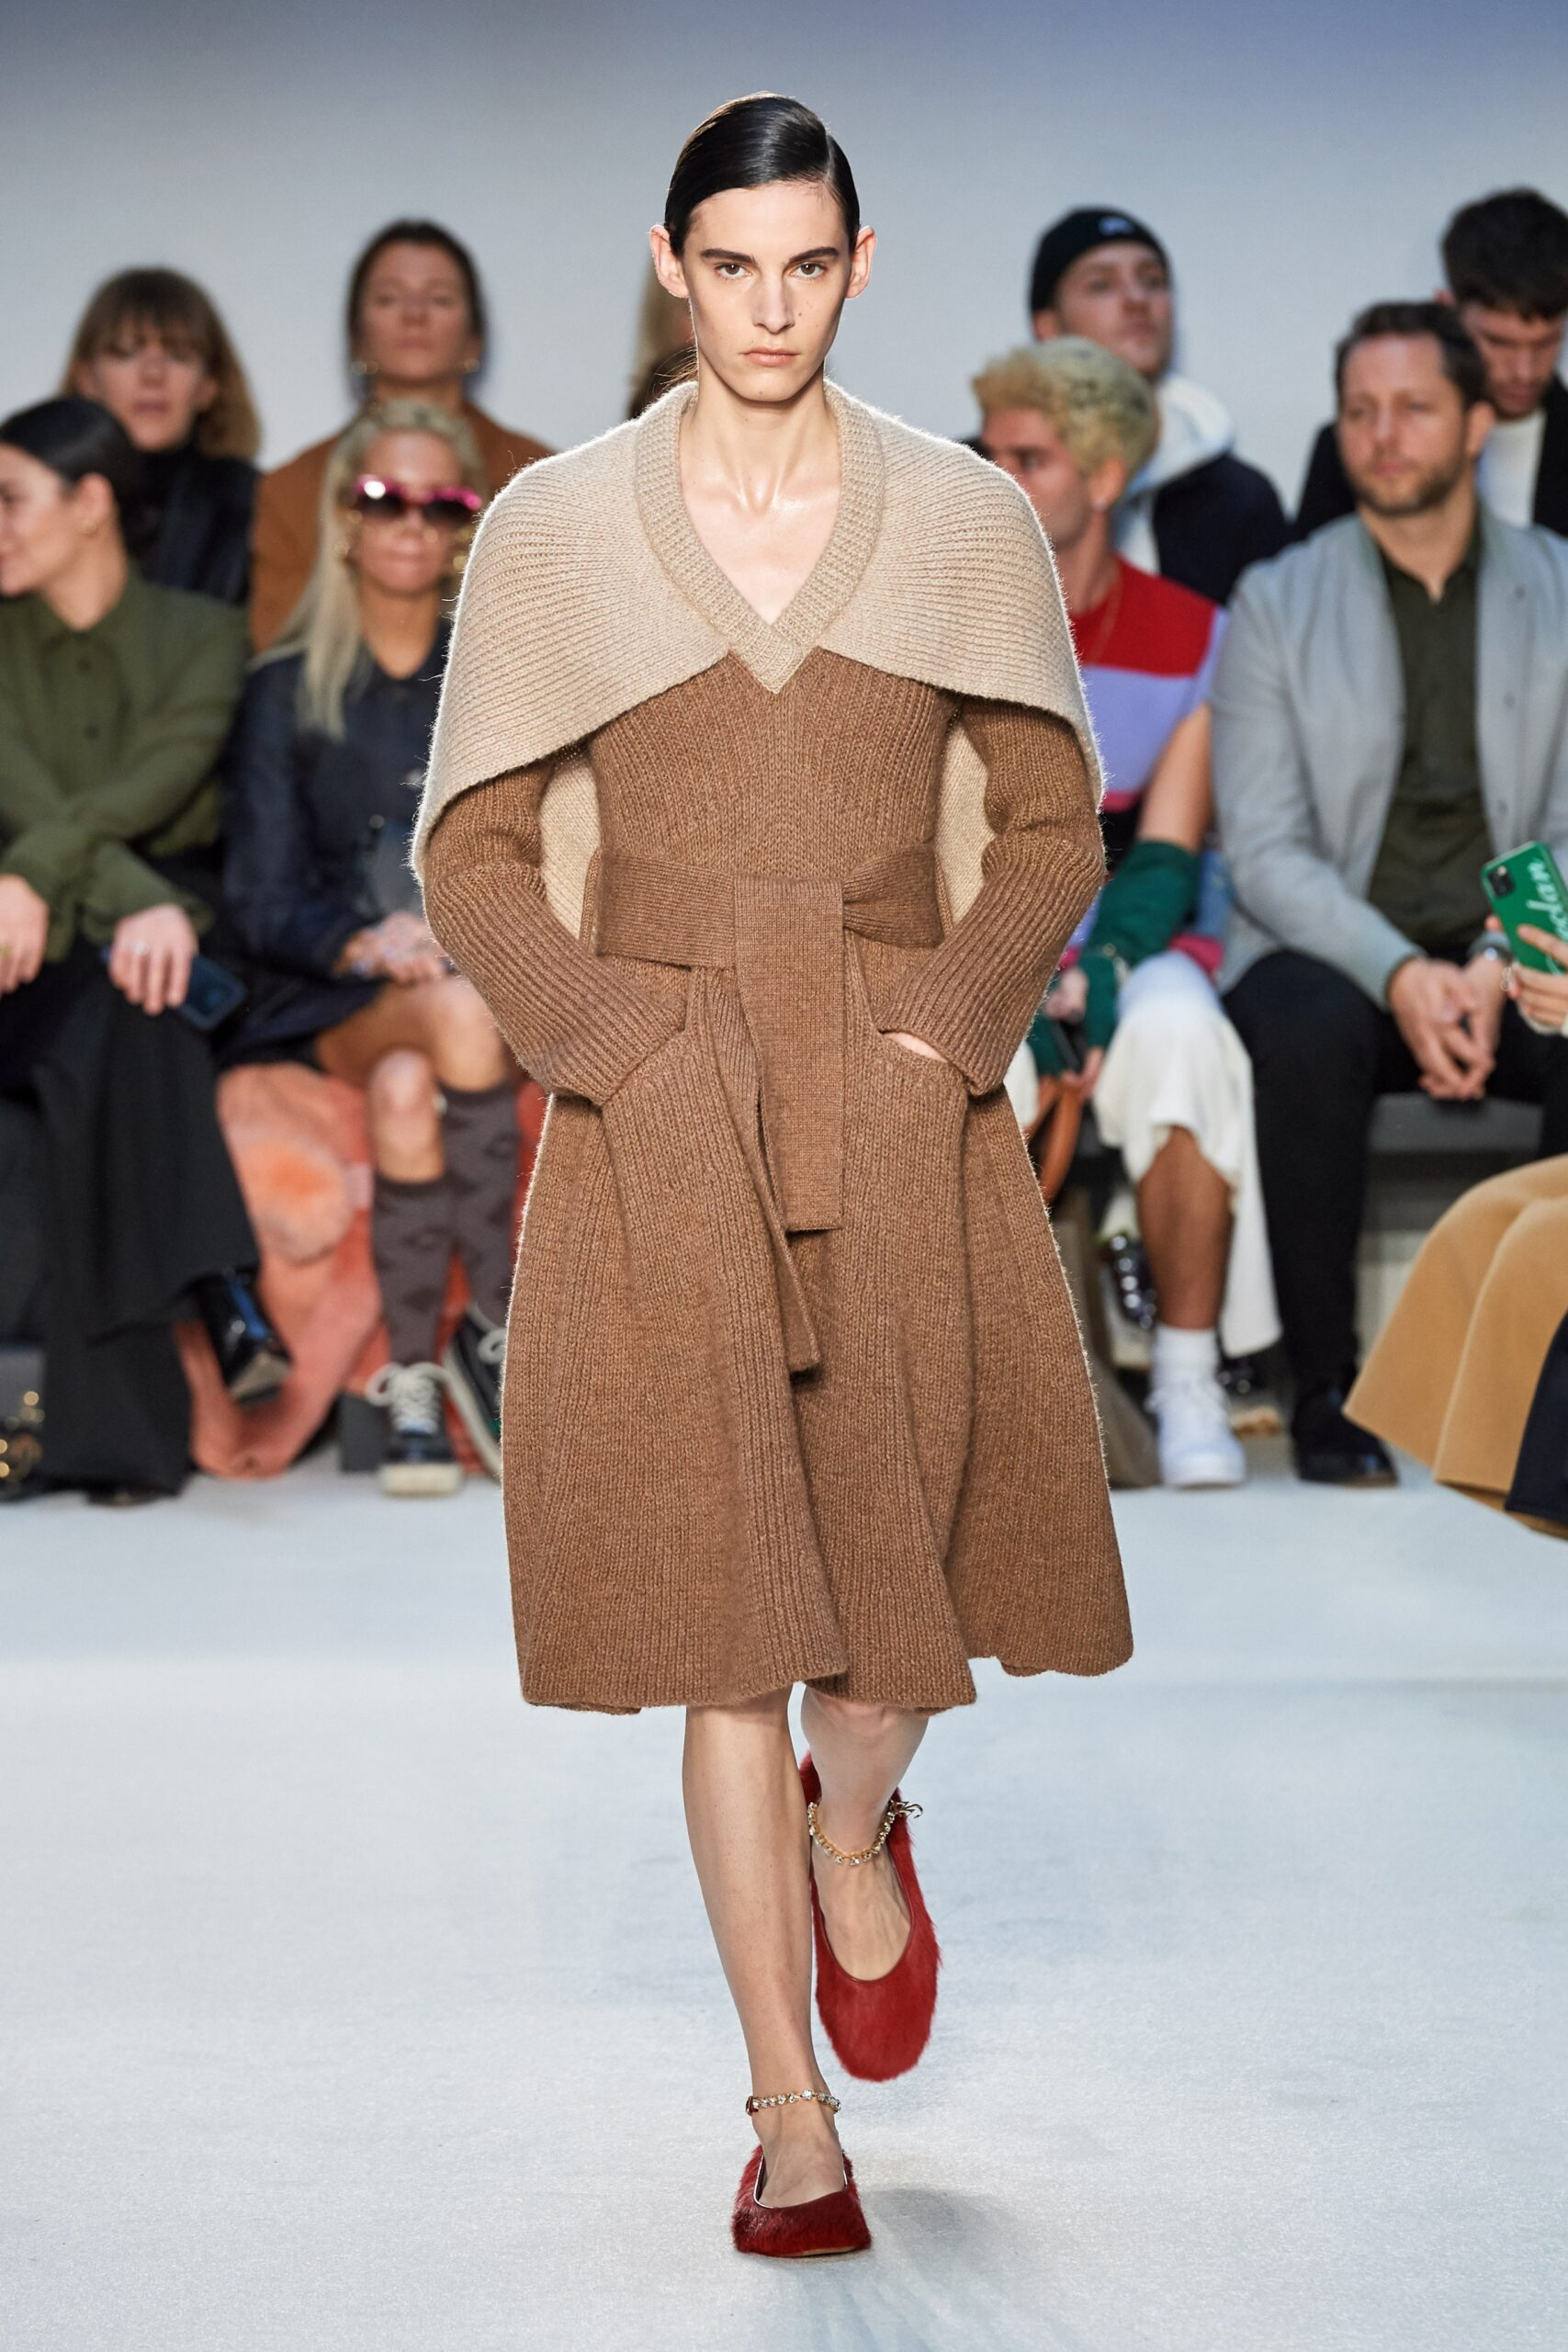 JW Anderson Fall 2020 ready-to-wear